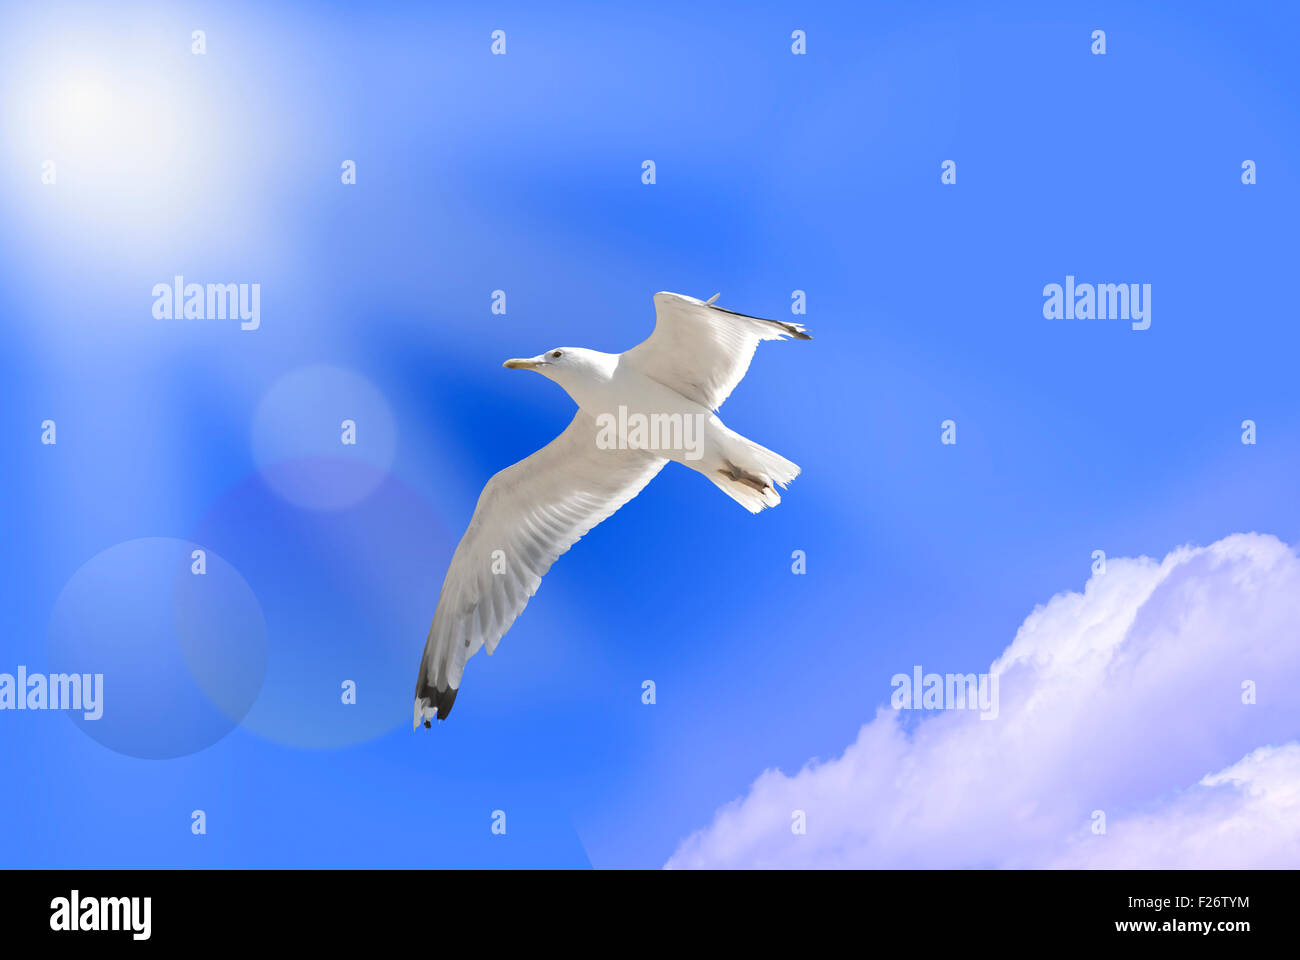 Oiseau de paradis on blue sky Photo Stock